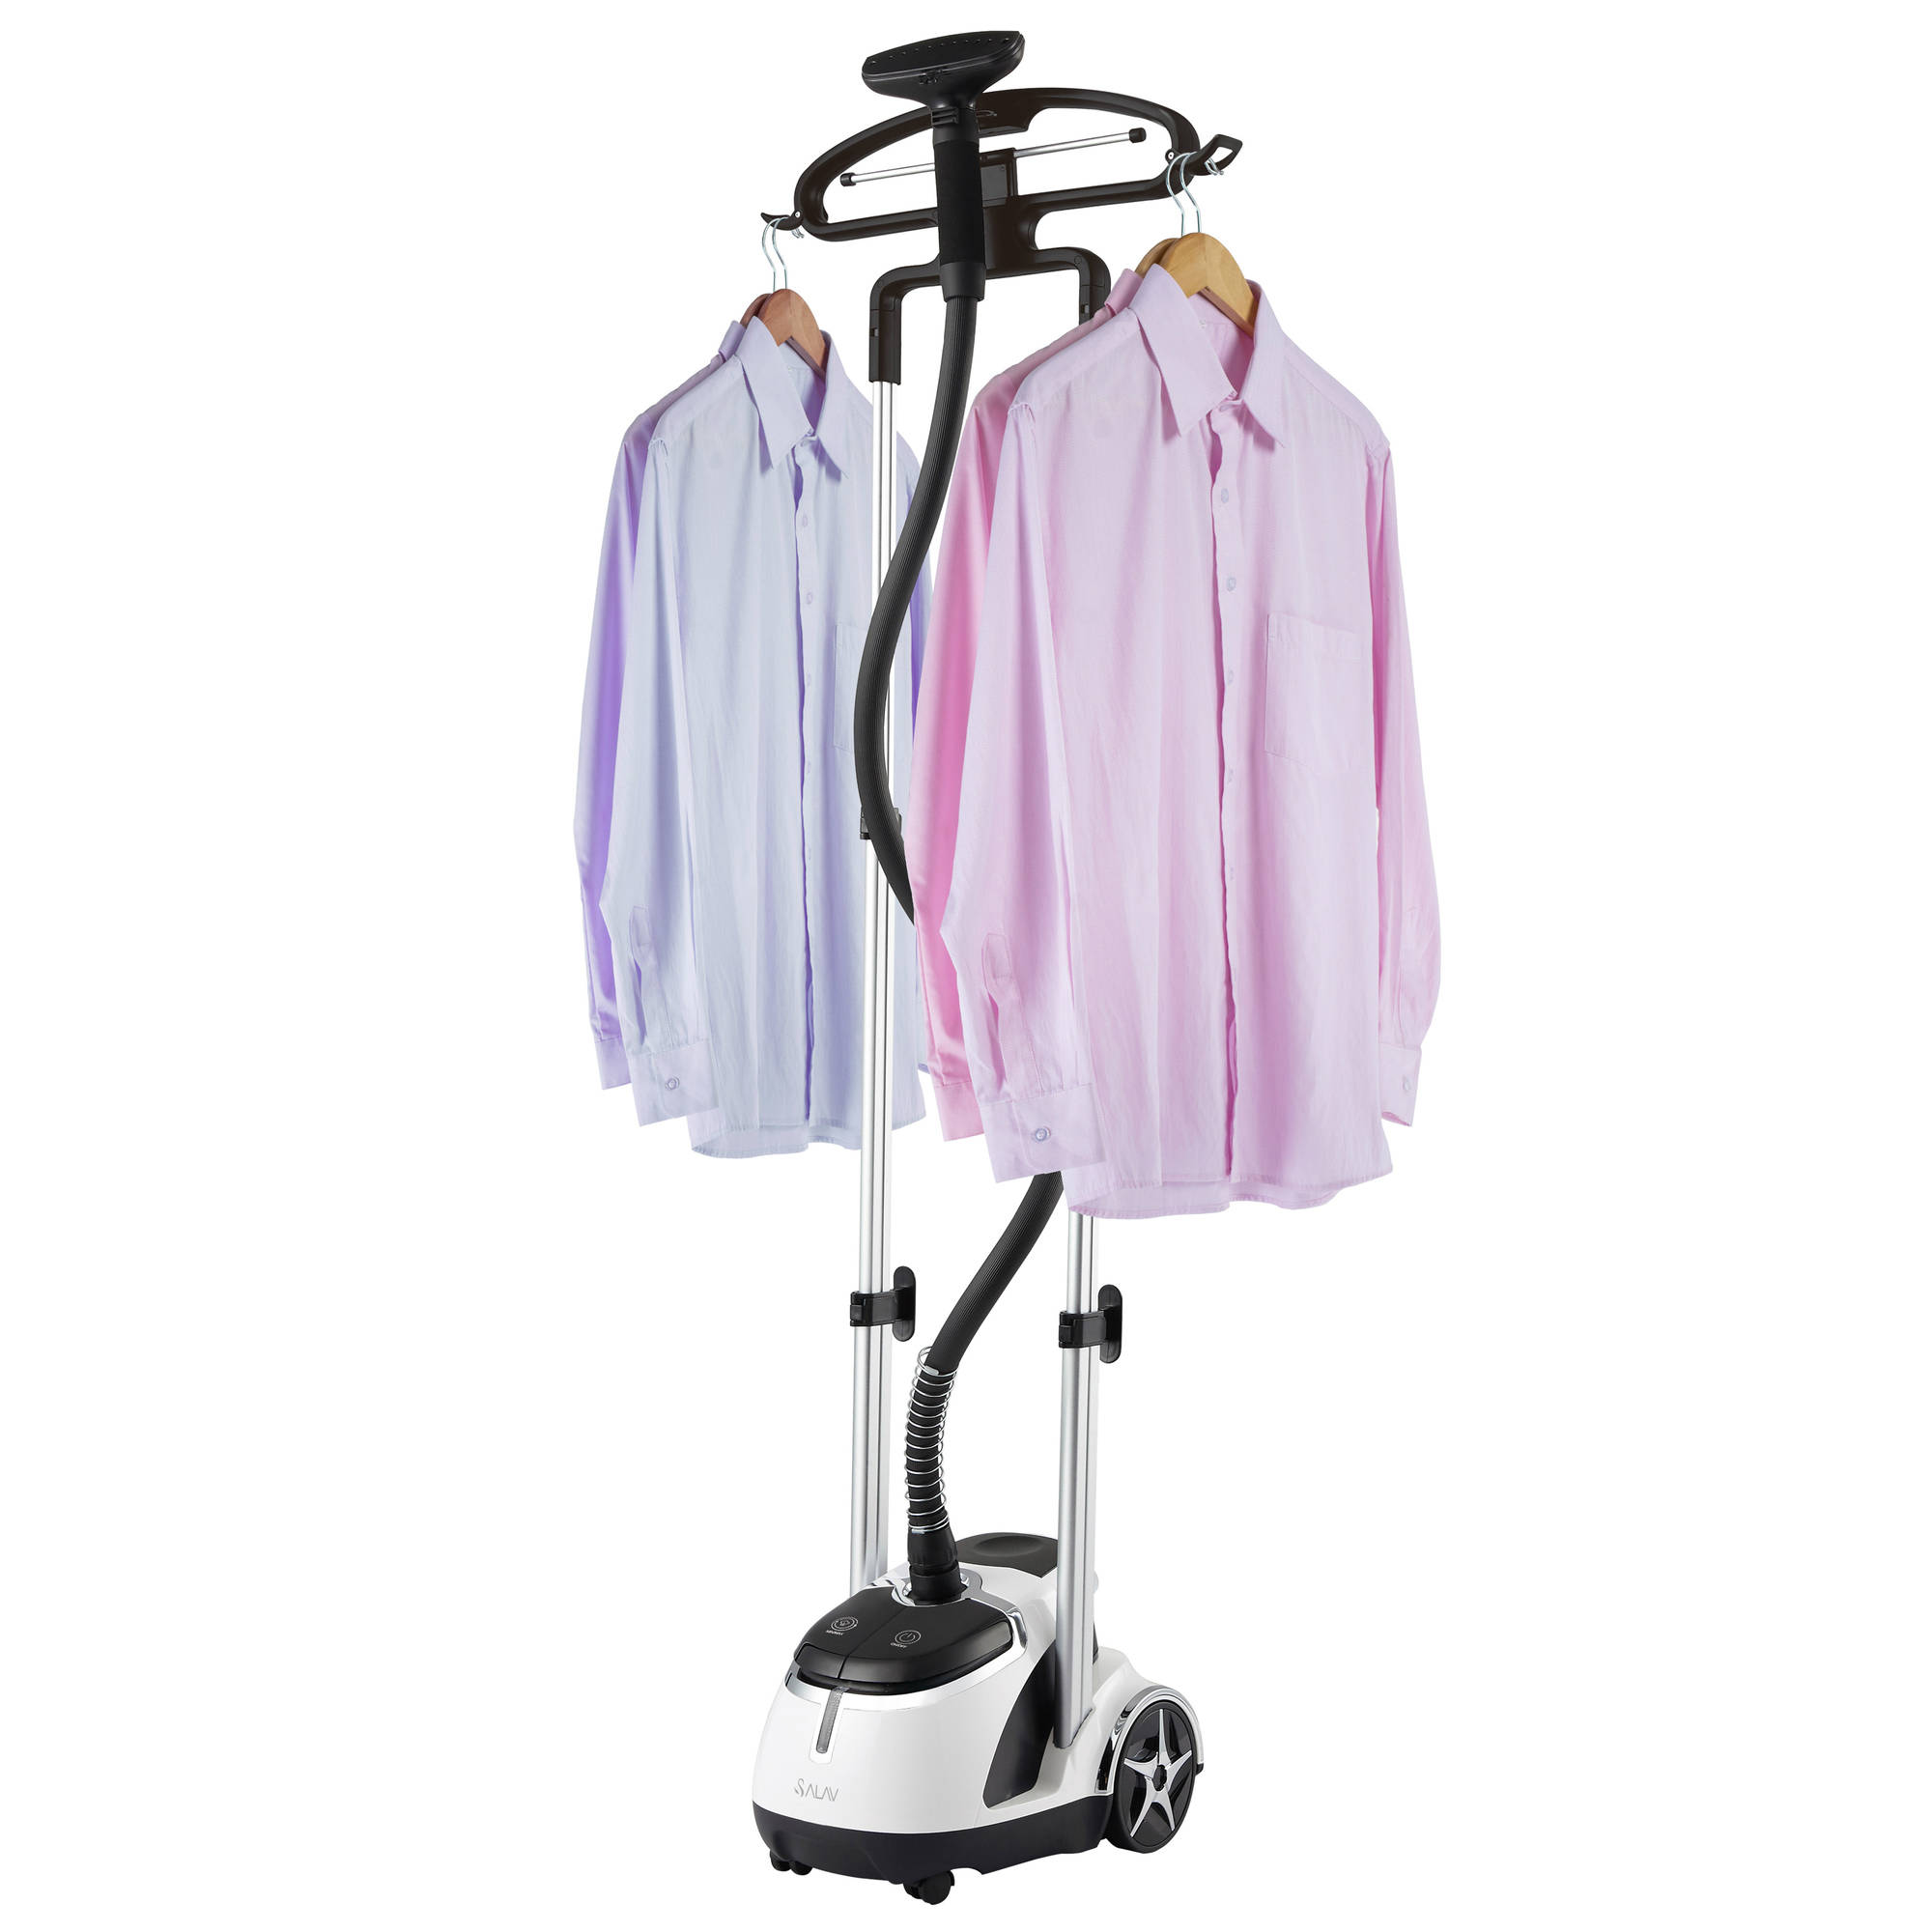 SALAV GS45-DJ Dual Bar Garment Steamer w/ Foot Pedal Controls, Black